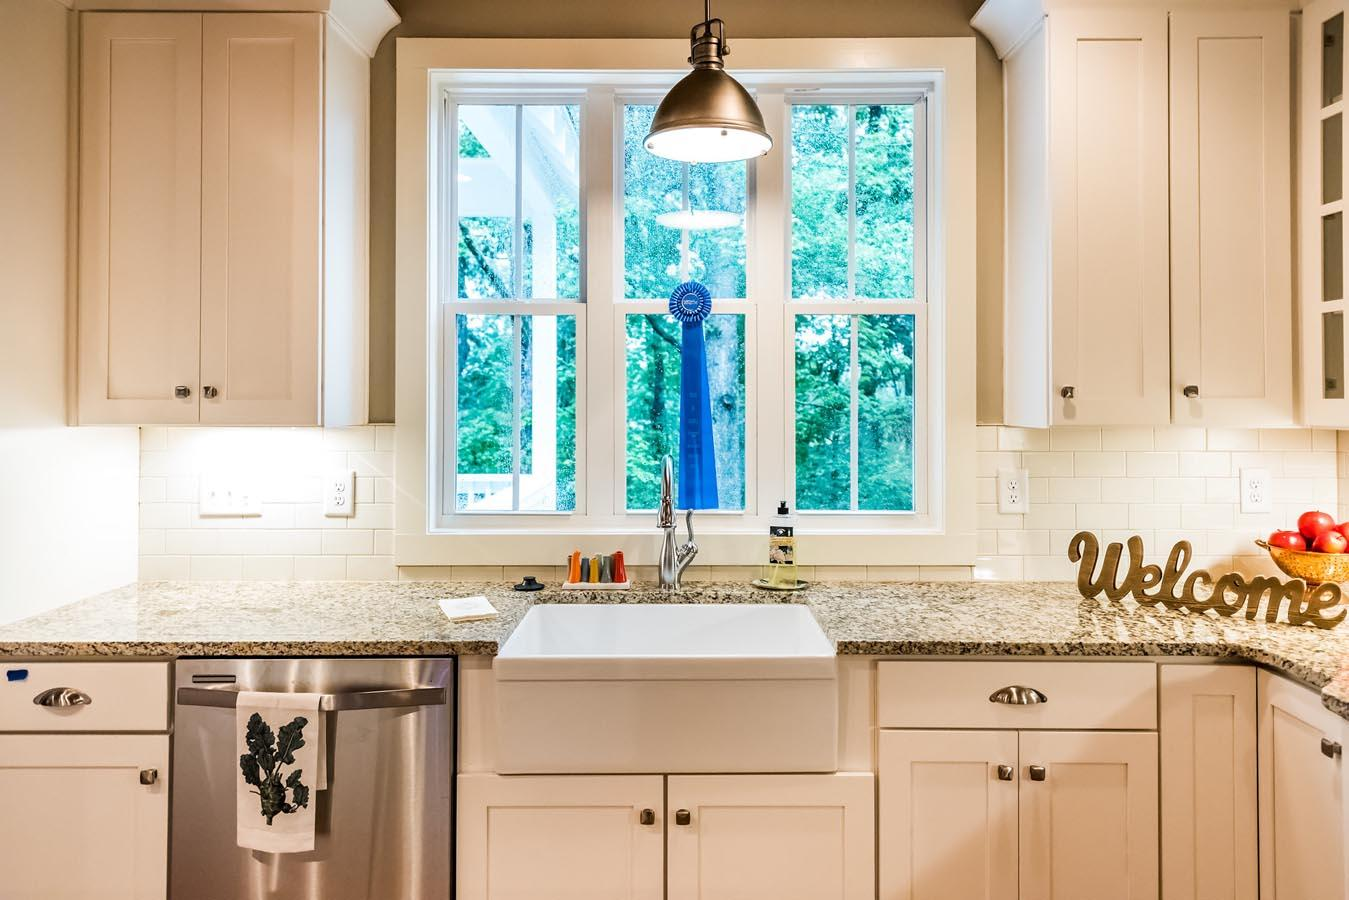 Kitchen Renovations - Holland Homes